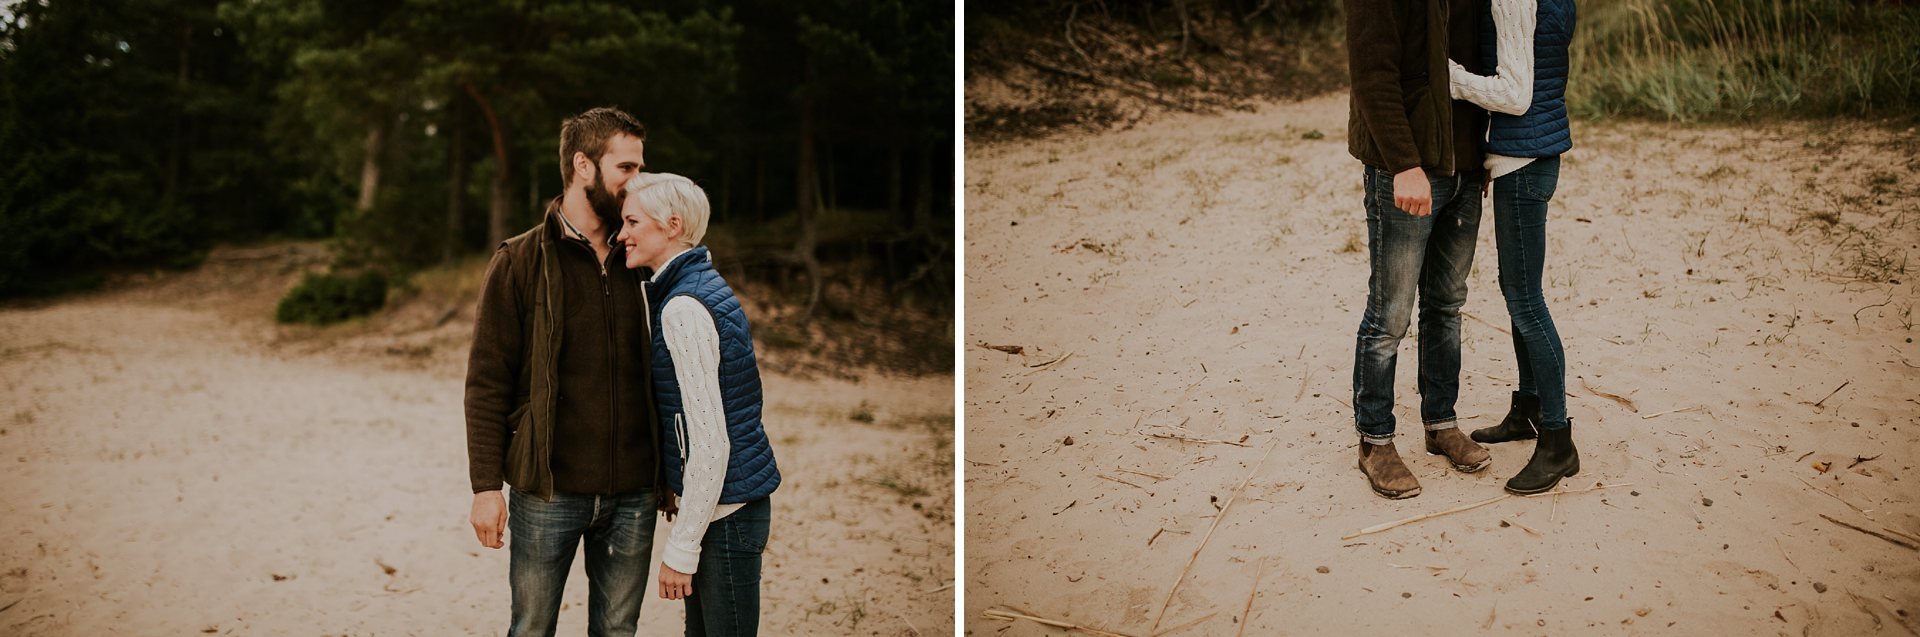 engagement photography in Vadstena Sweden